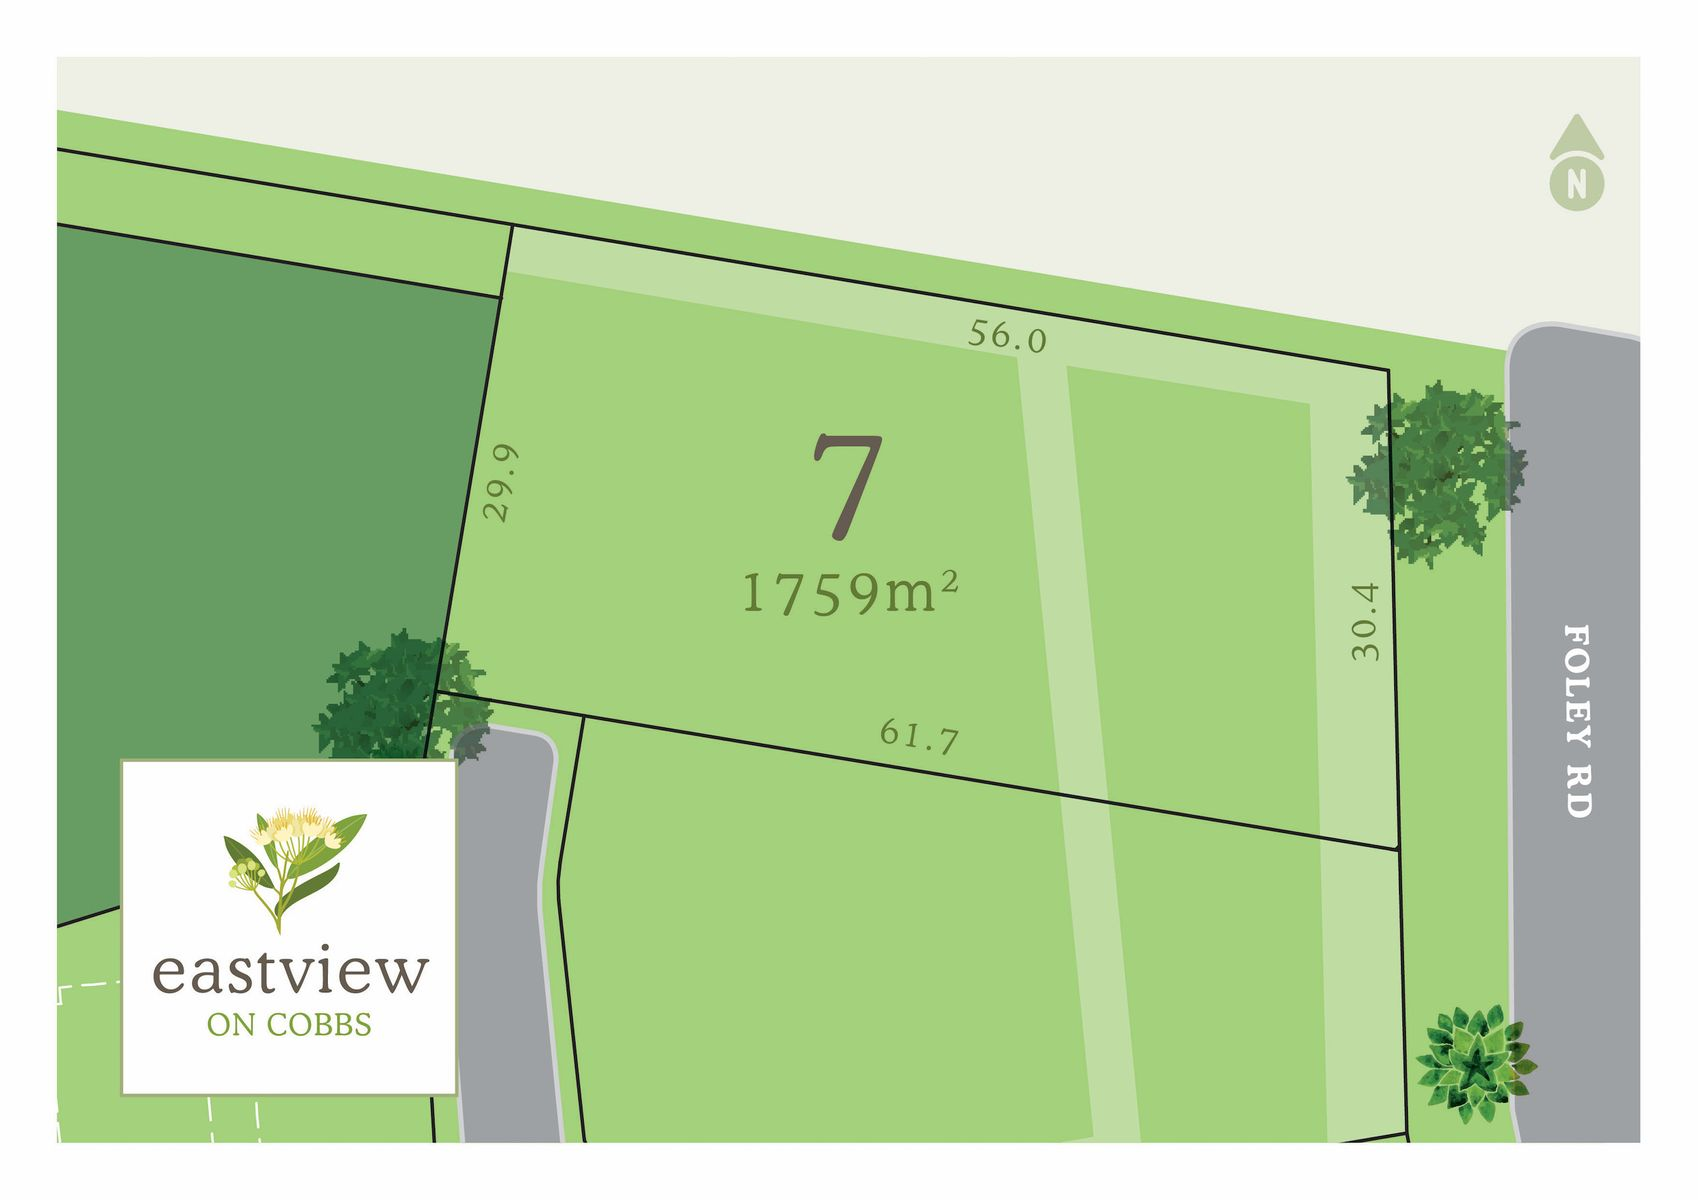 Lot 7 Eastview Close, Woombye, QLD 4559